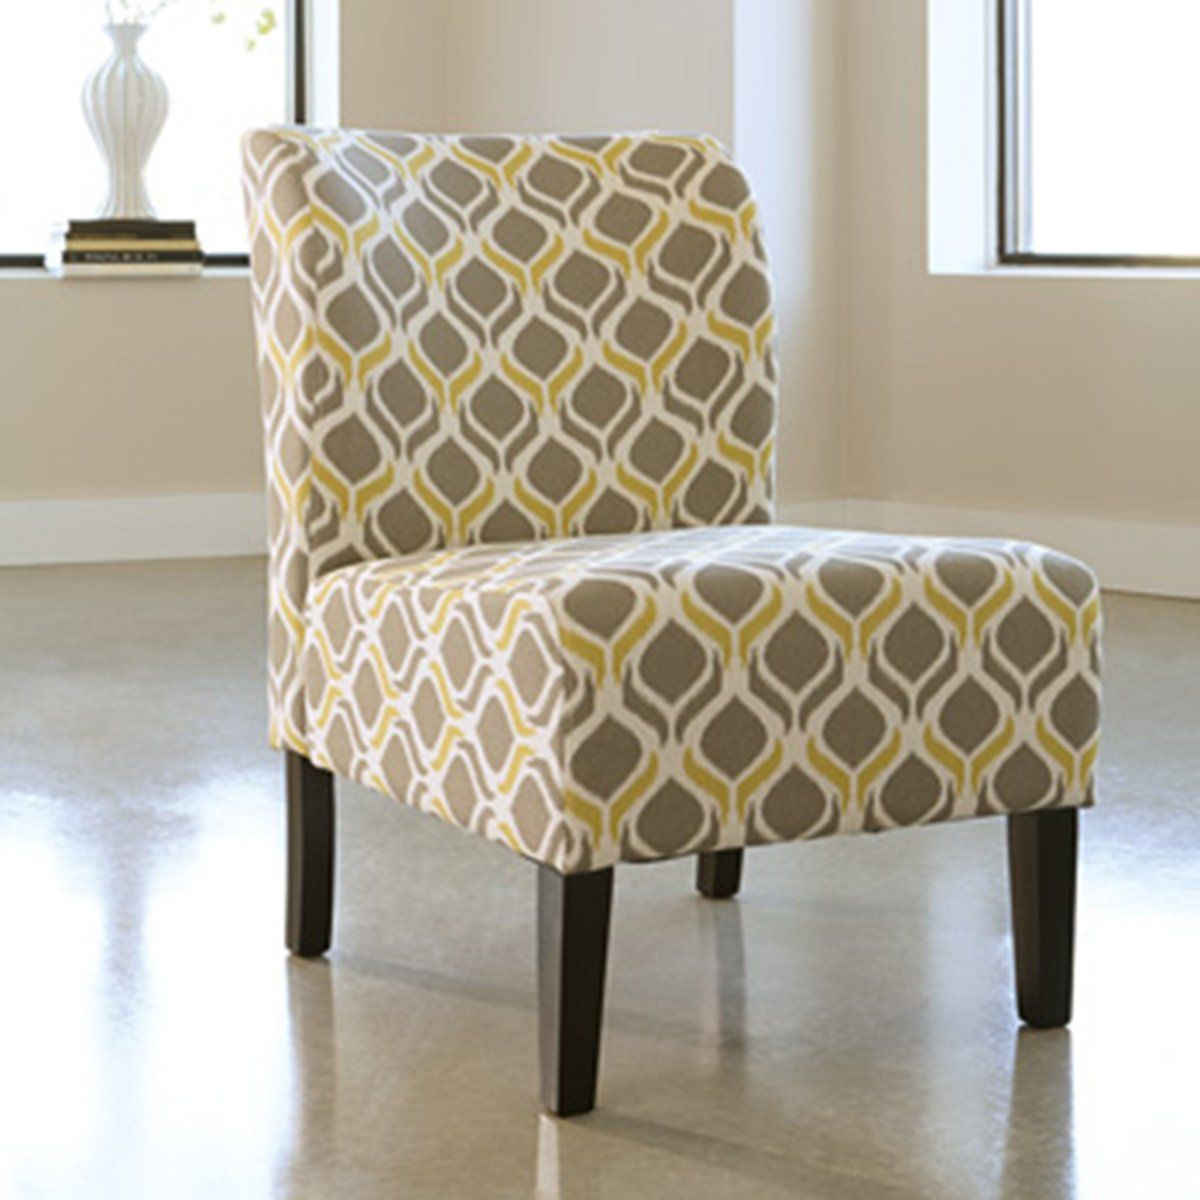 Upholstered Accent Chair Gunmetal Upholstered Accent